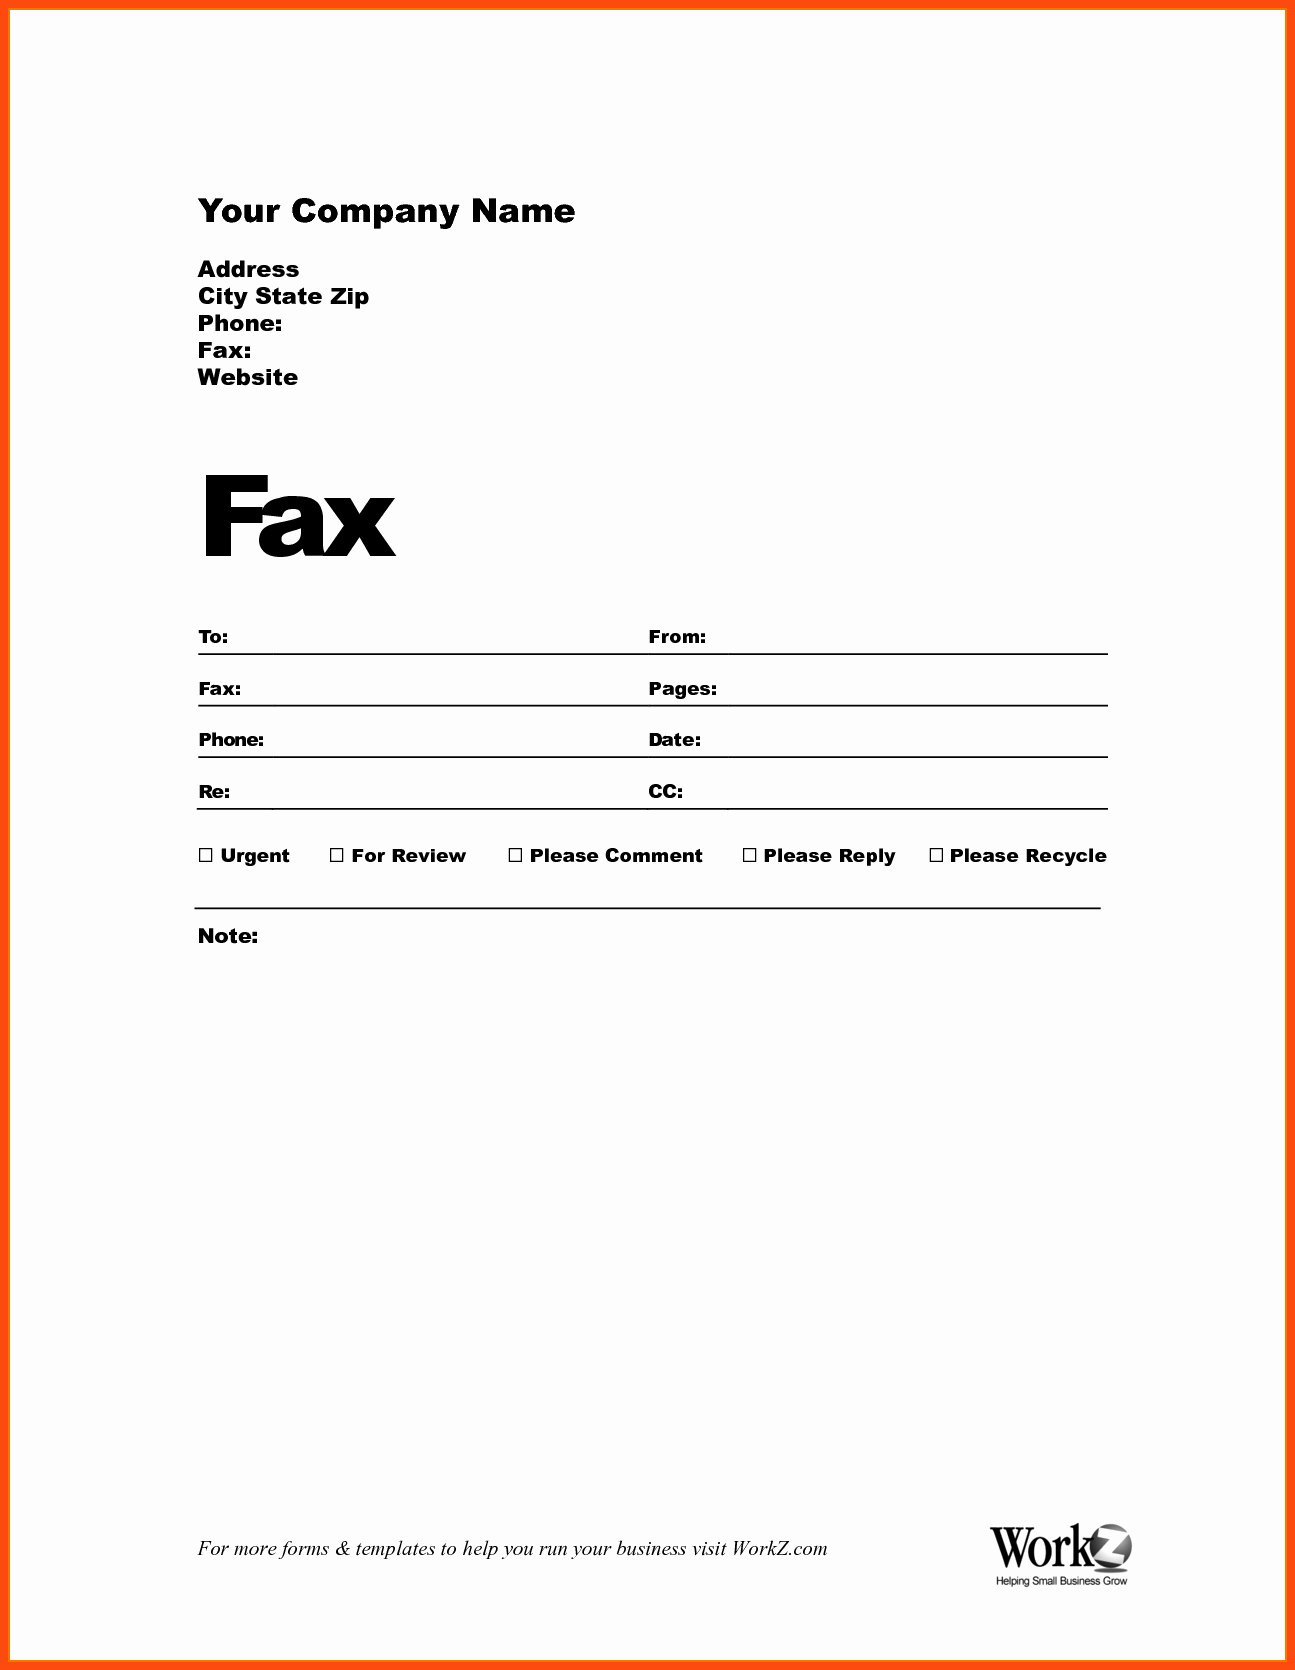 Fax Cover Sheet with Logo Best Of How to Fill Out A Fax Cover Sheet